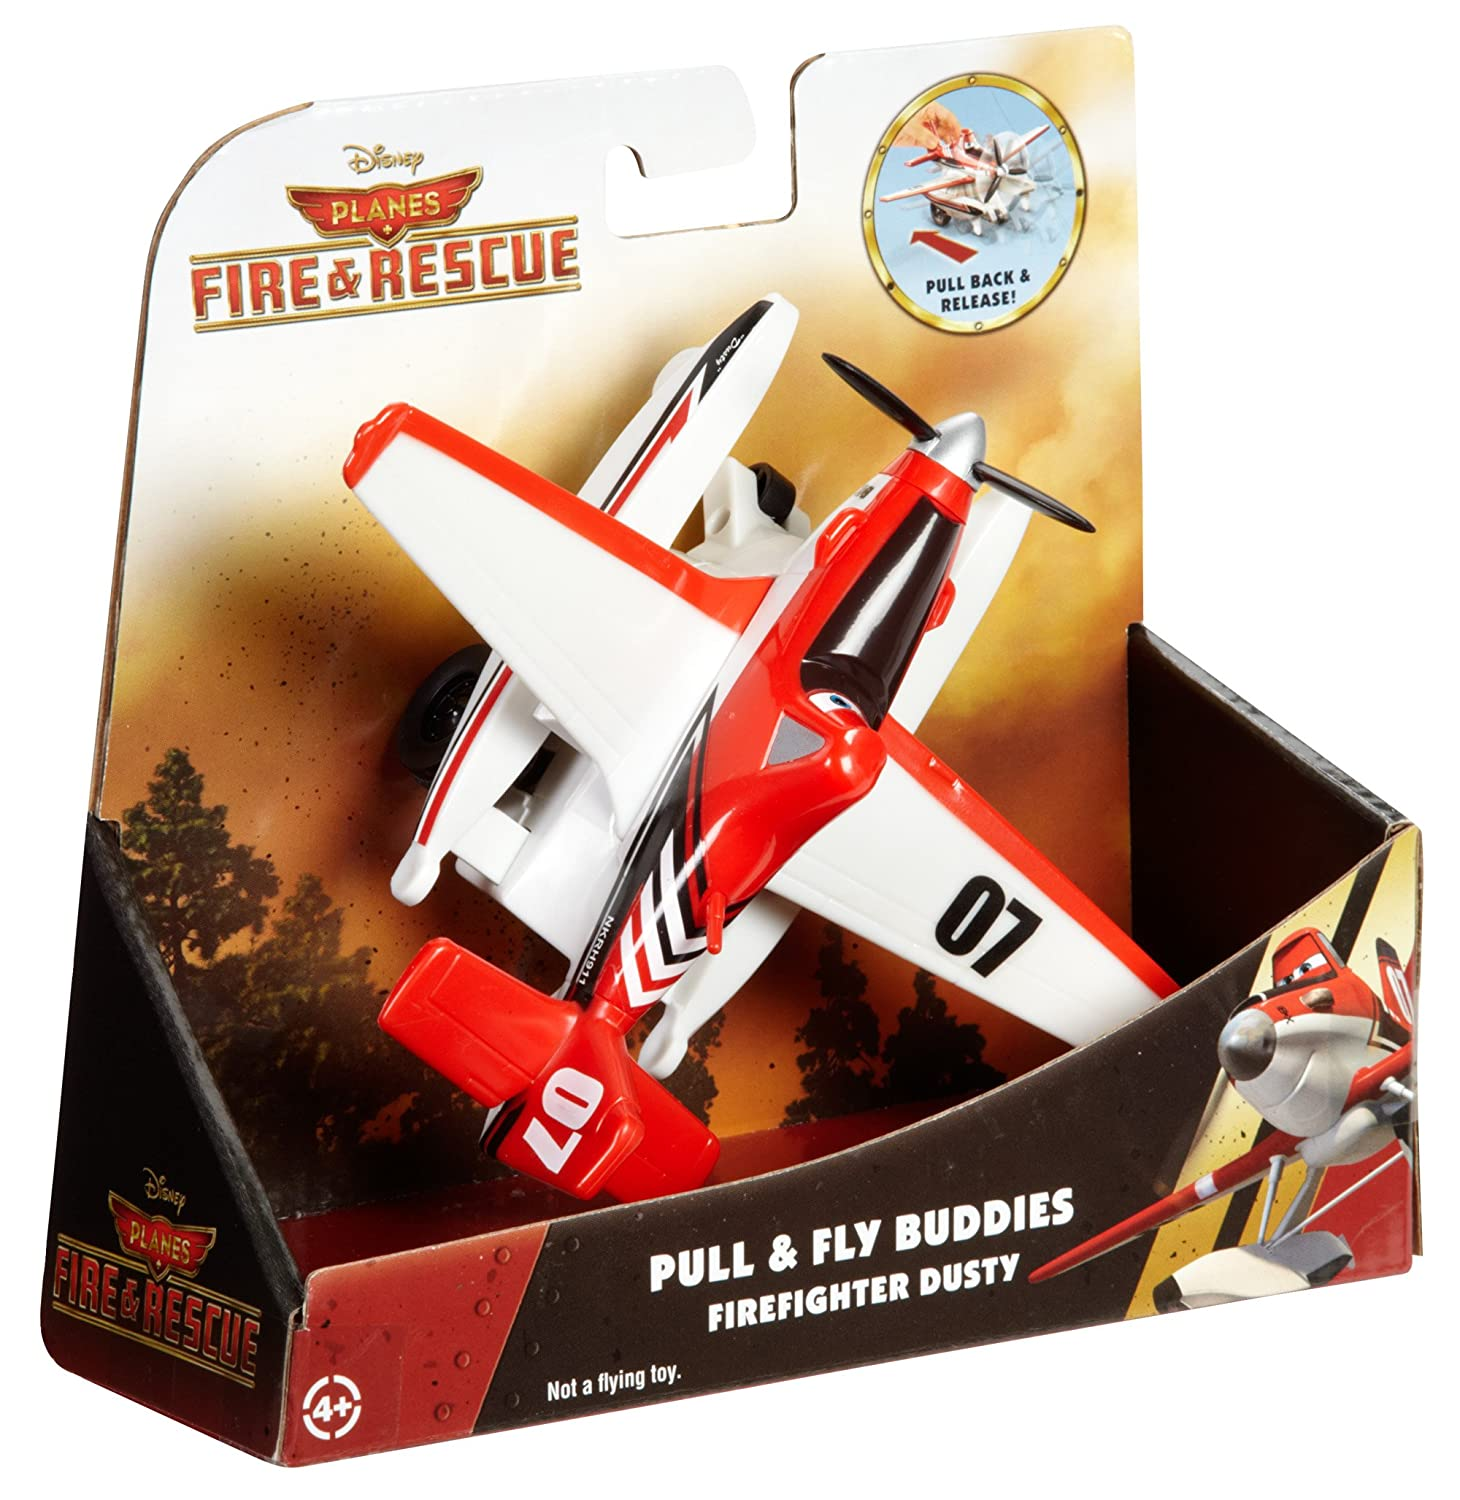 Disney Planes Fire /& Rescue Pull /& Fly Firefighter Dusty Vehicle CDW04